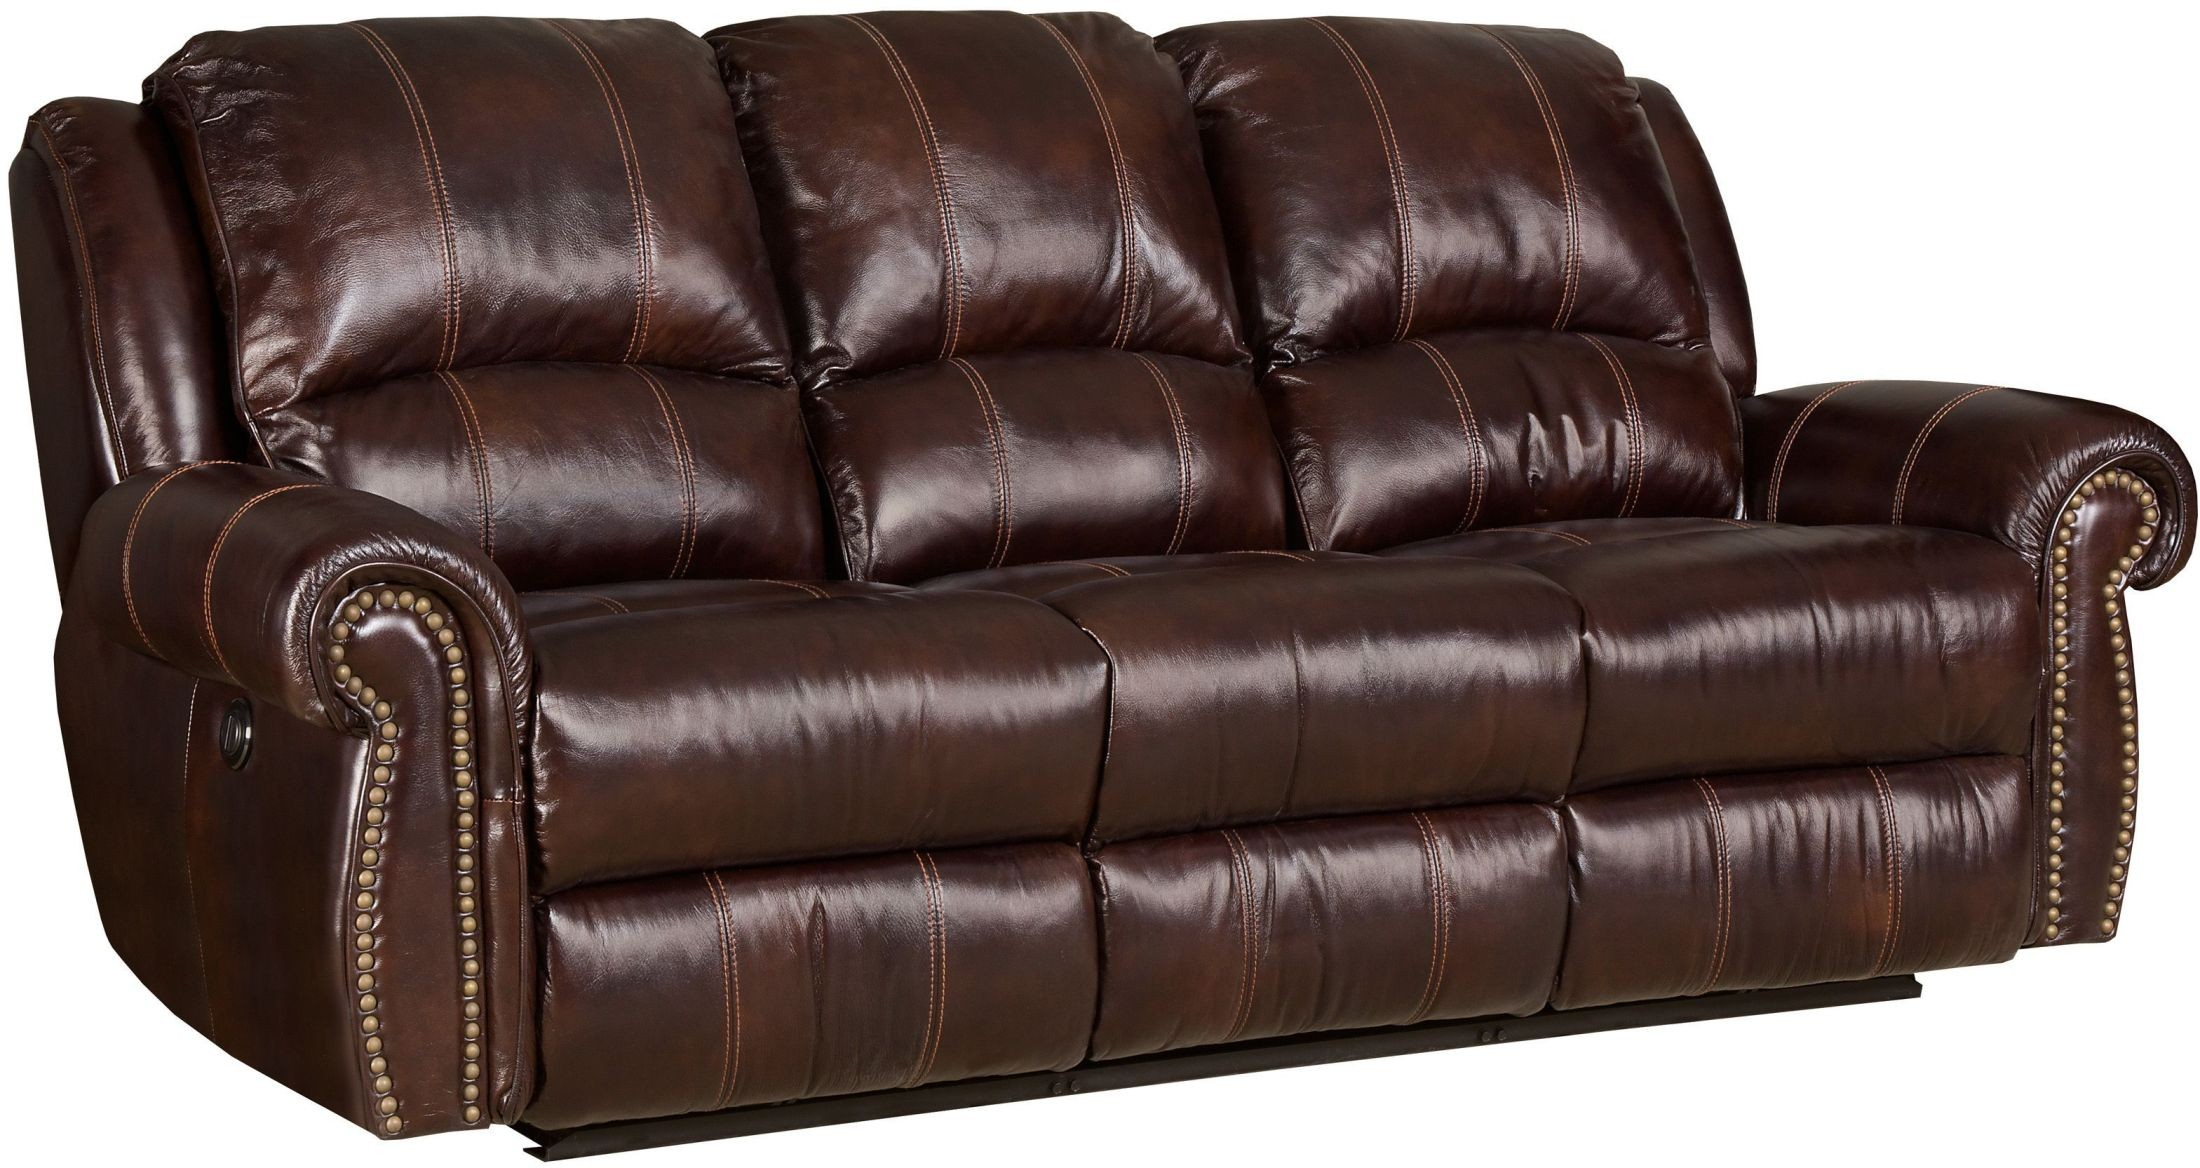 Jackson Brown Power Leather Reclining Sofa From Hooker For Expedition Brown Power Reclining Sofas (View 5 of 15)